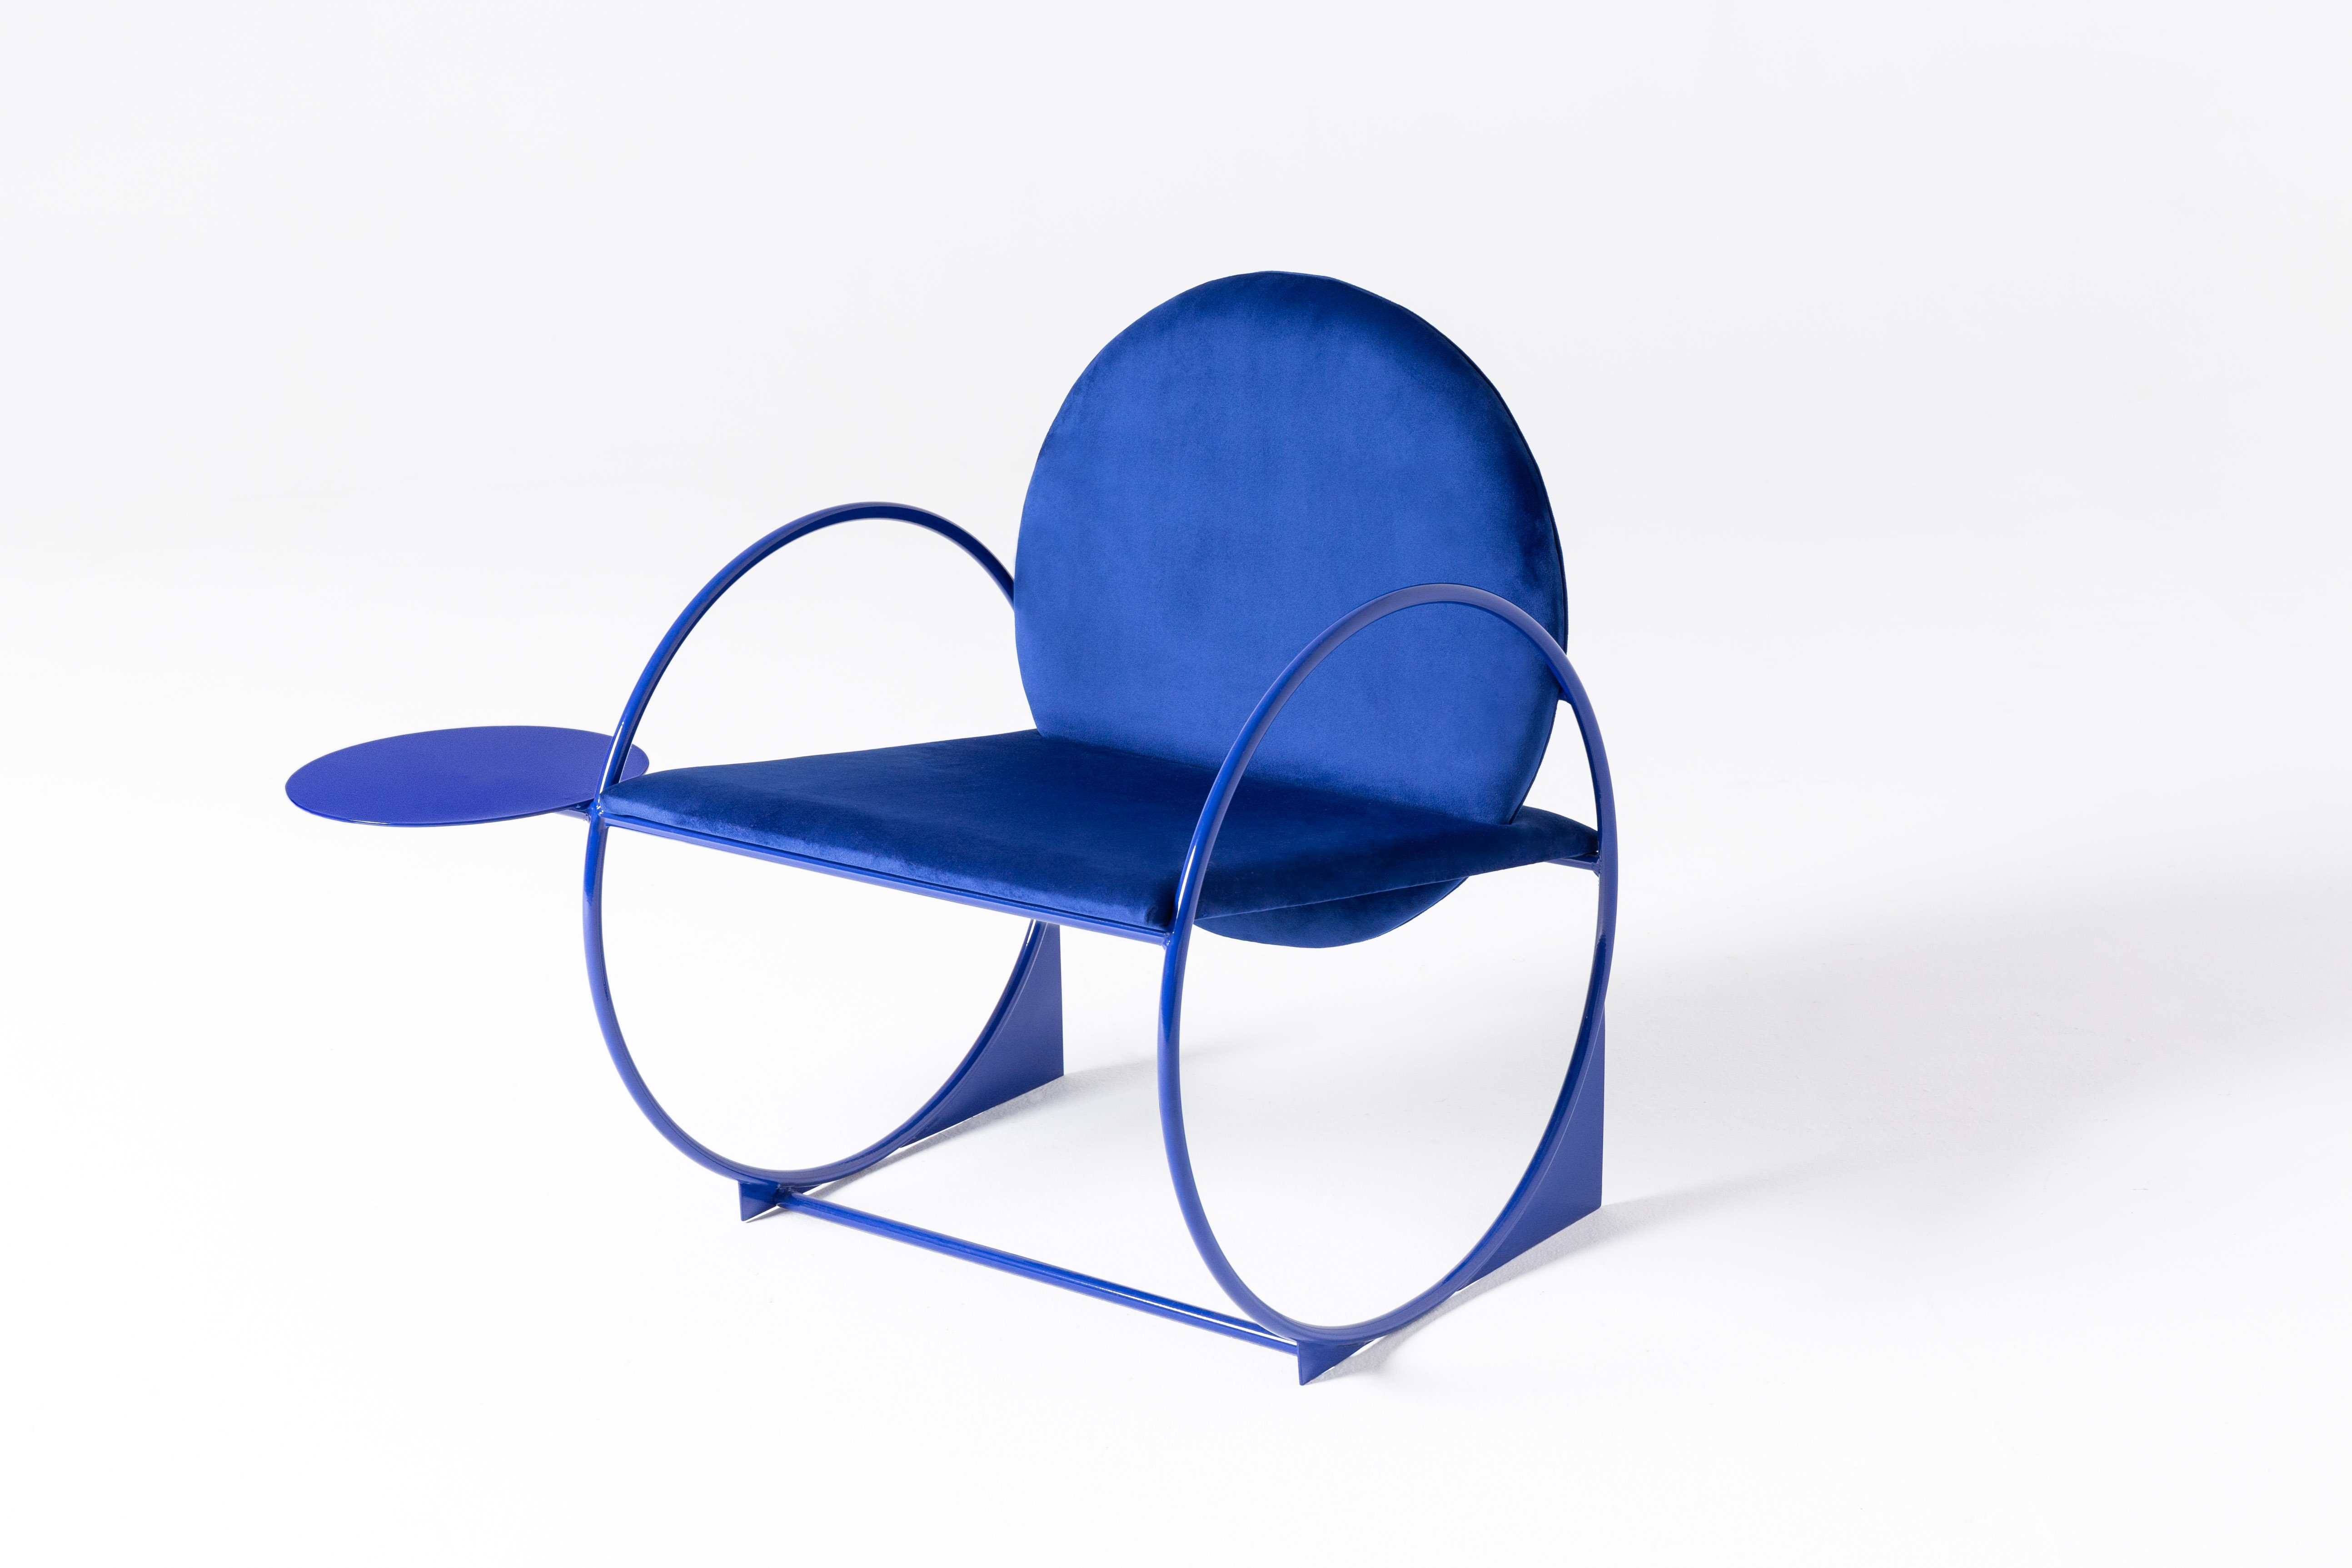 Blue lounge chair, collectible design.